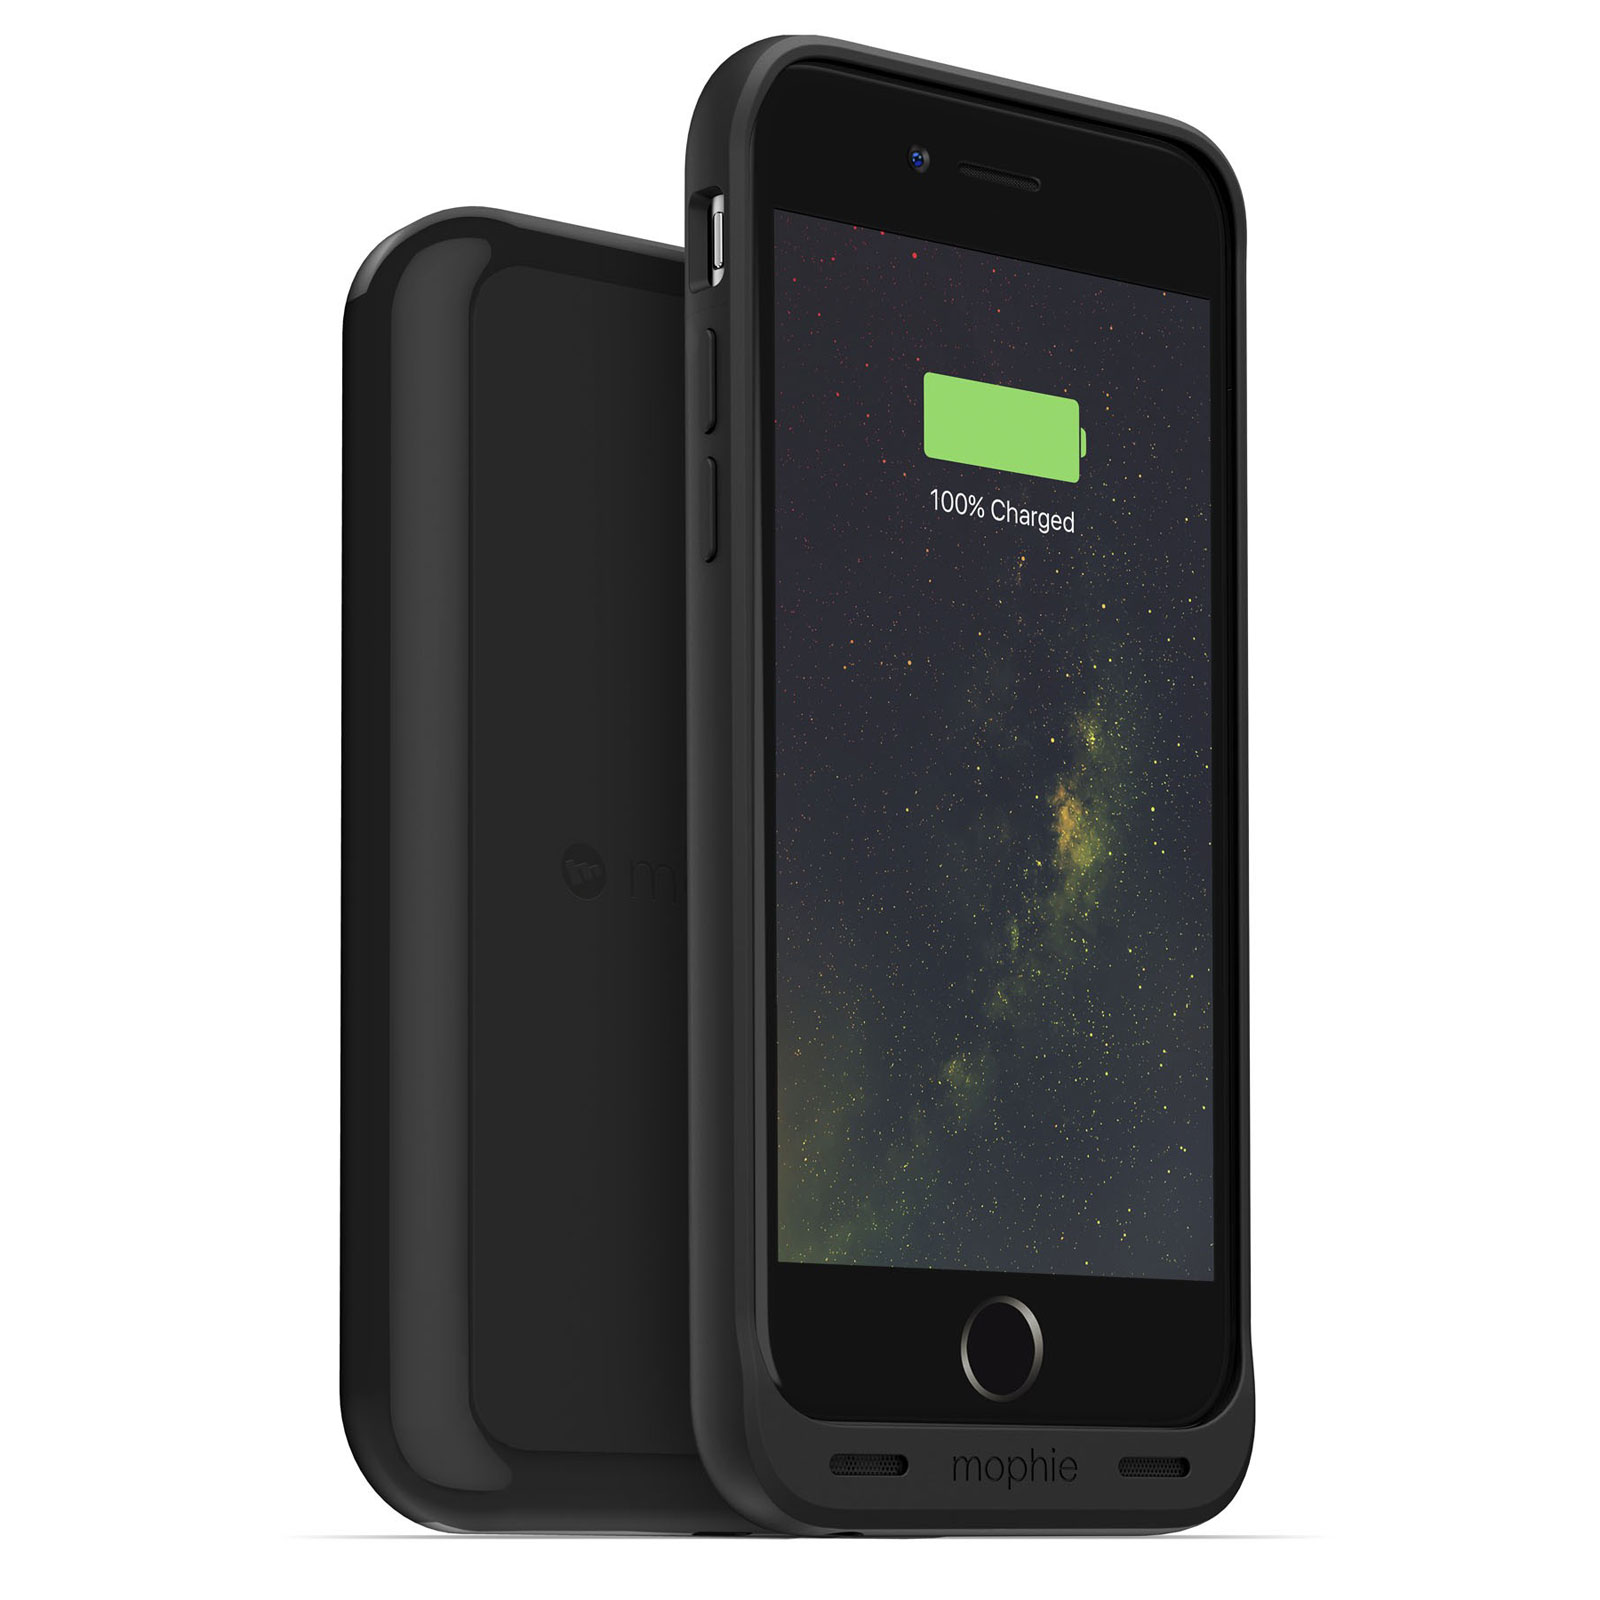 mophie juice pack wireless charging base noir iphone 6 6s etui t l phone mophie sur. Black Bedroom Furniture Sets. Home Design Ideas